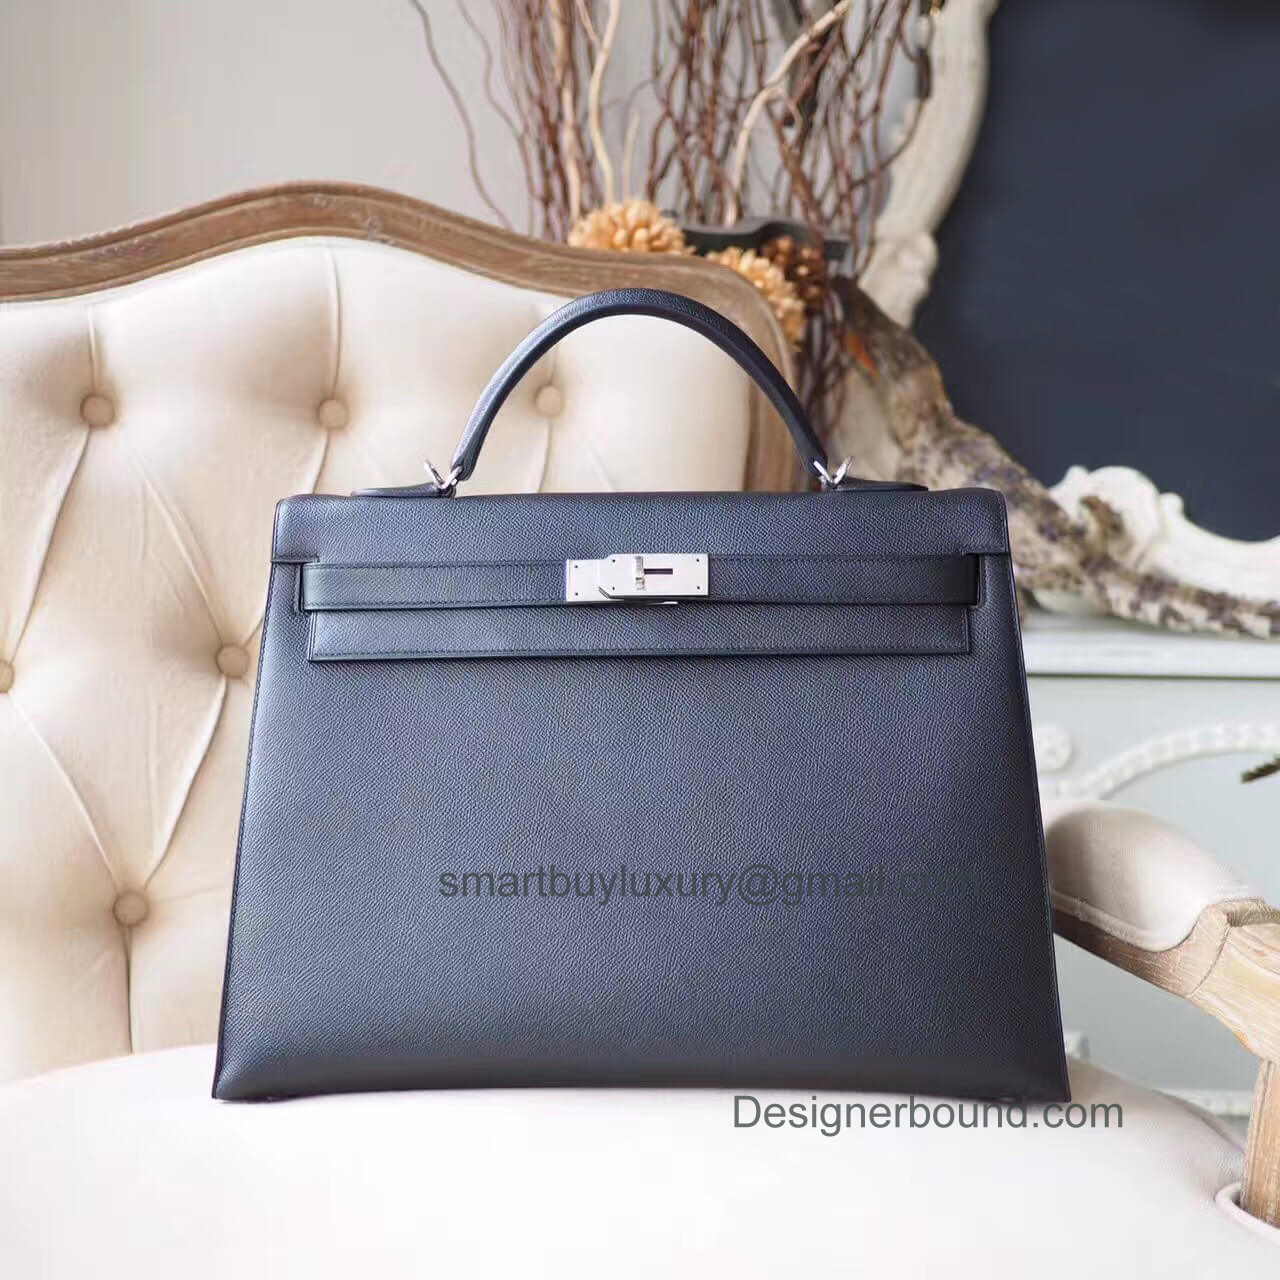 Hermes Kelly 40 Bag in ck89 Noir Epsom PHW